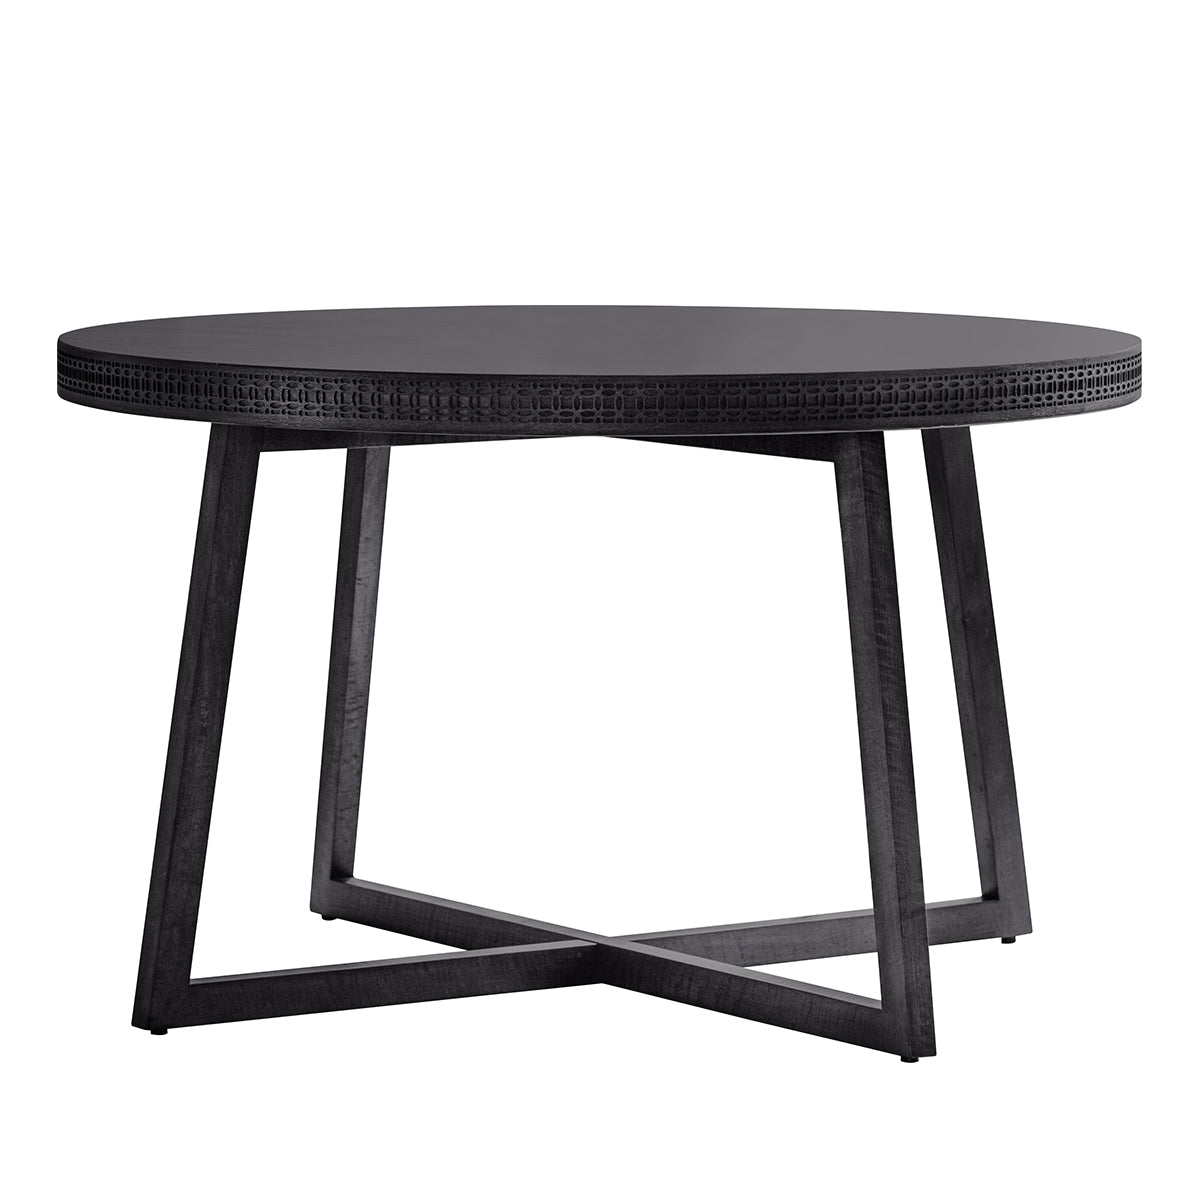 Greenwich Round Dining Table in Matt Charcoal - Ezzo